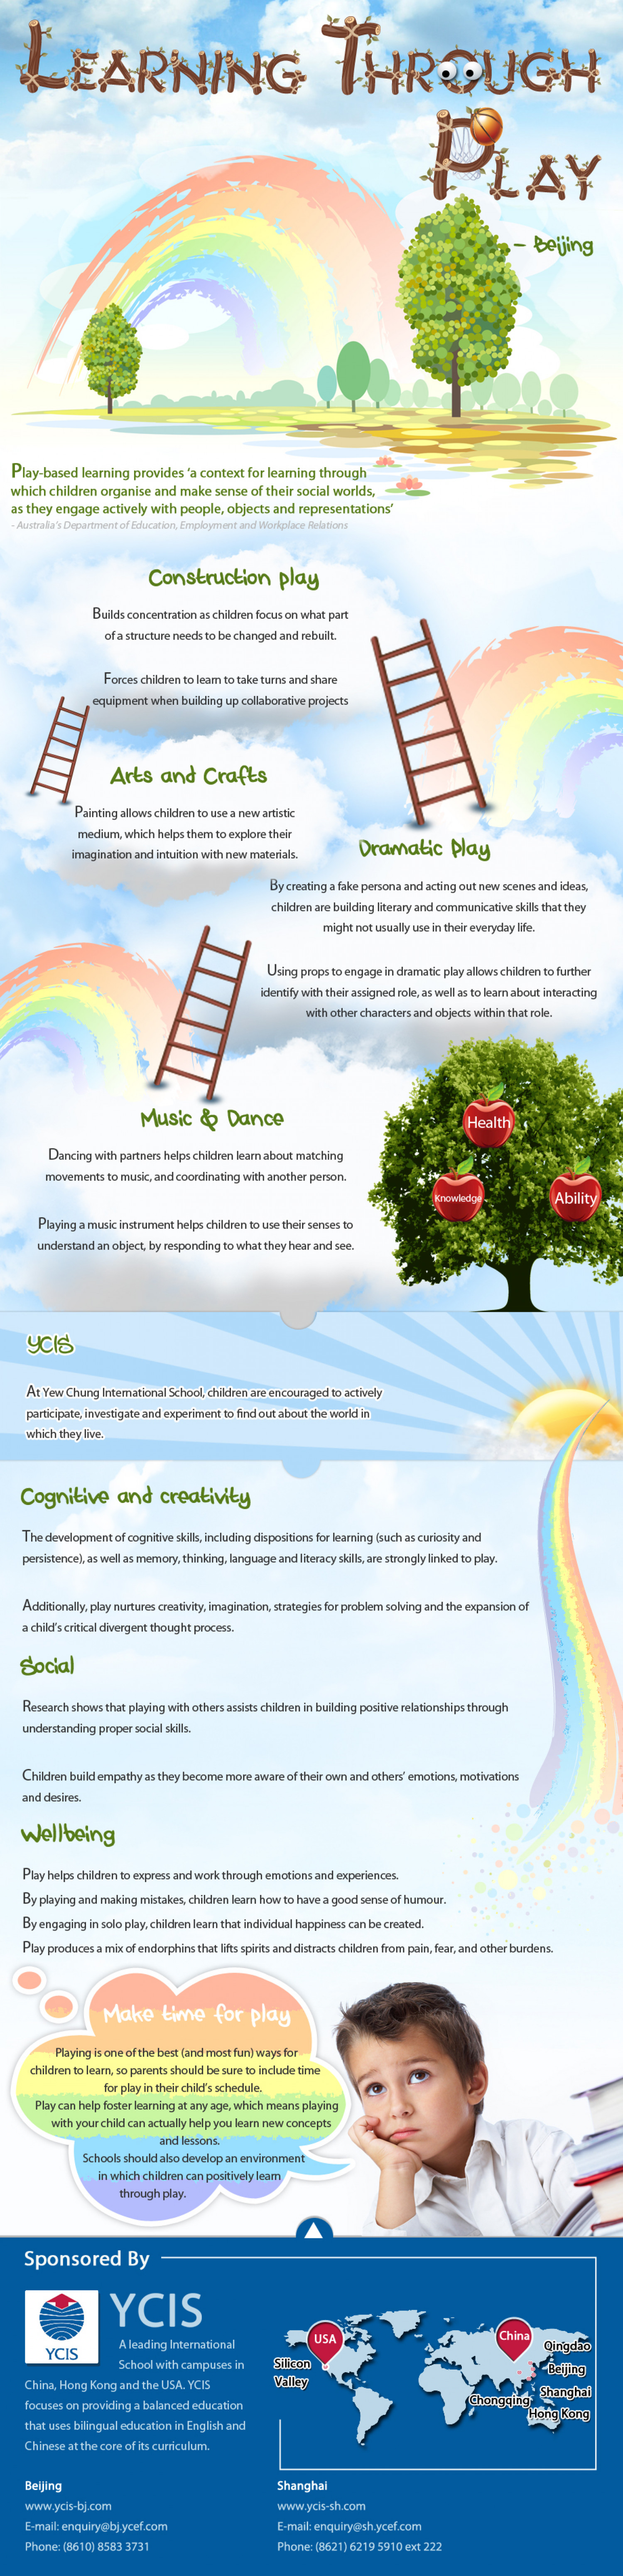 Learning Through Play Infographic